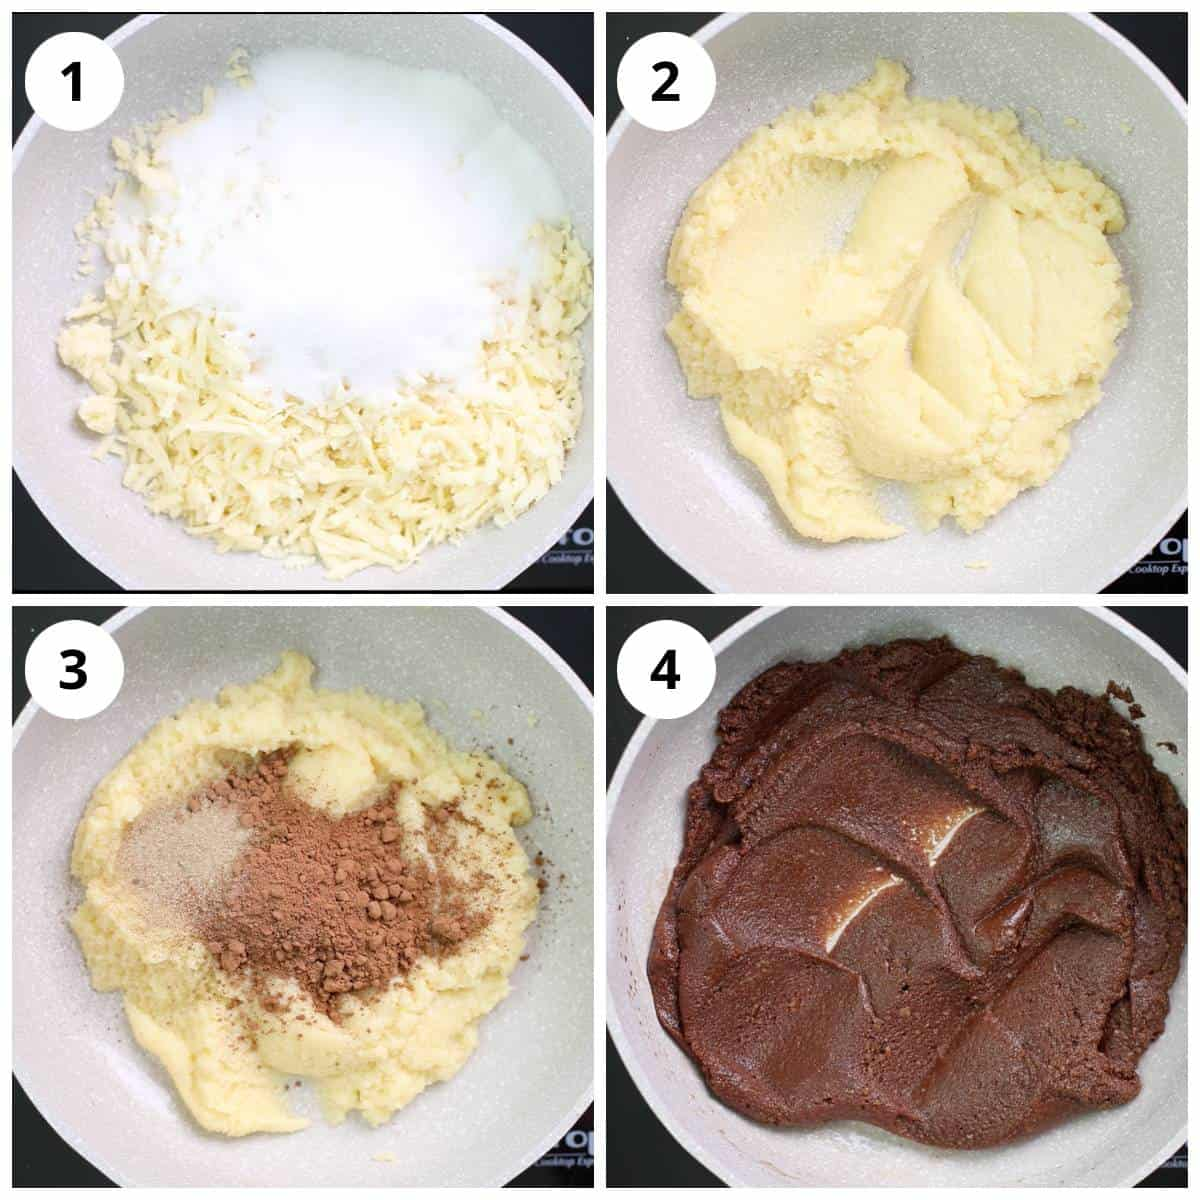 Steps for melting mawa, sugar and mixing with cocoa powder and cardamom powder for making chocolate modak